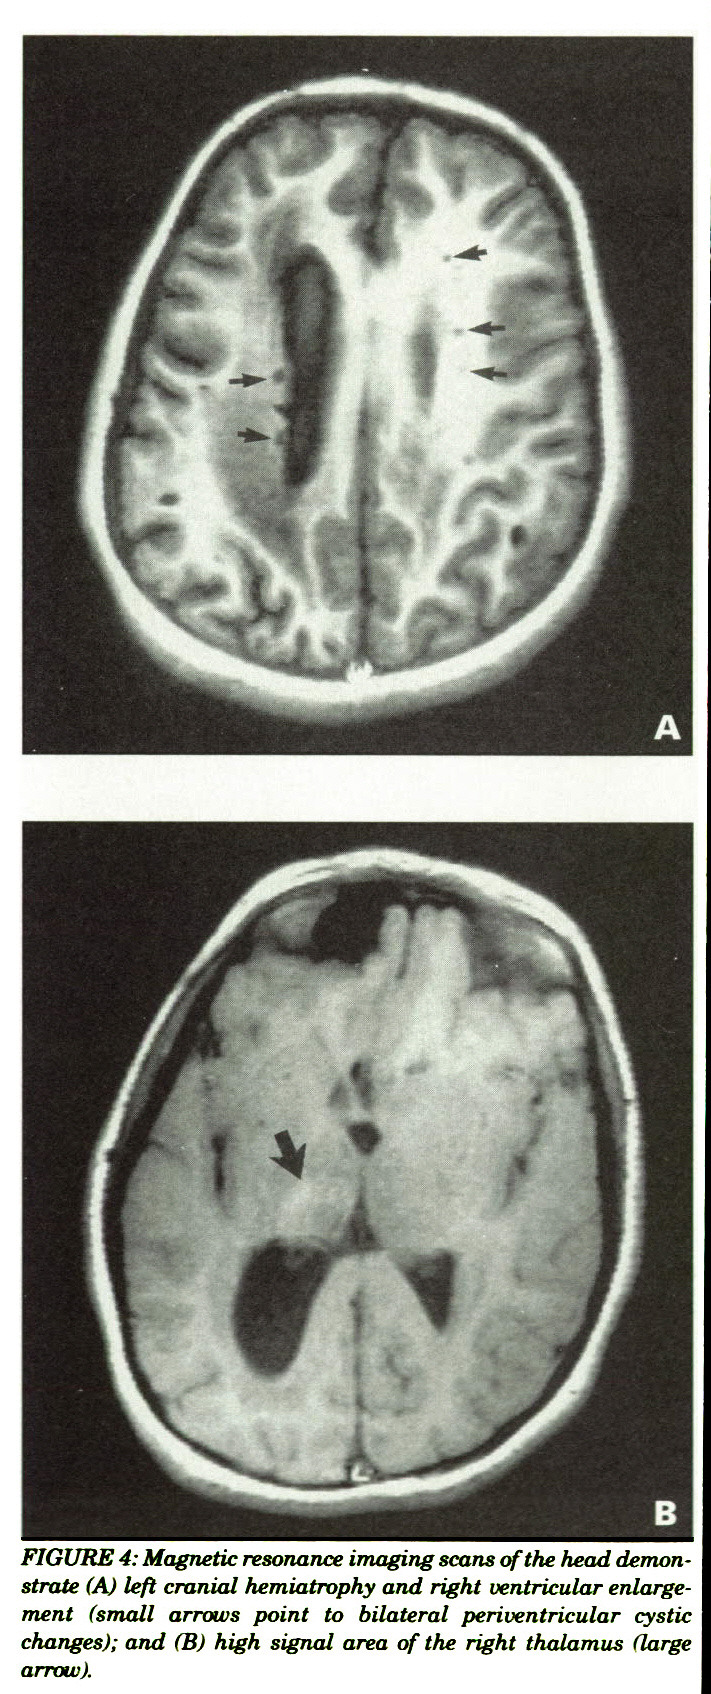 FIGURE 4: Magnetic resonance imaging scans of the head demonstrate (A) left cranial hemiatrophy and right ventricular enlargement (small arrows point to bilateral periventricular cystic changes); and (B) high signal area of the right thalamus (large arrow).